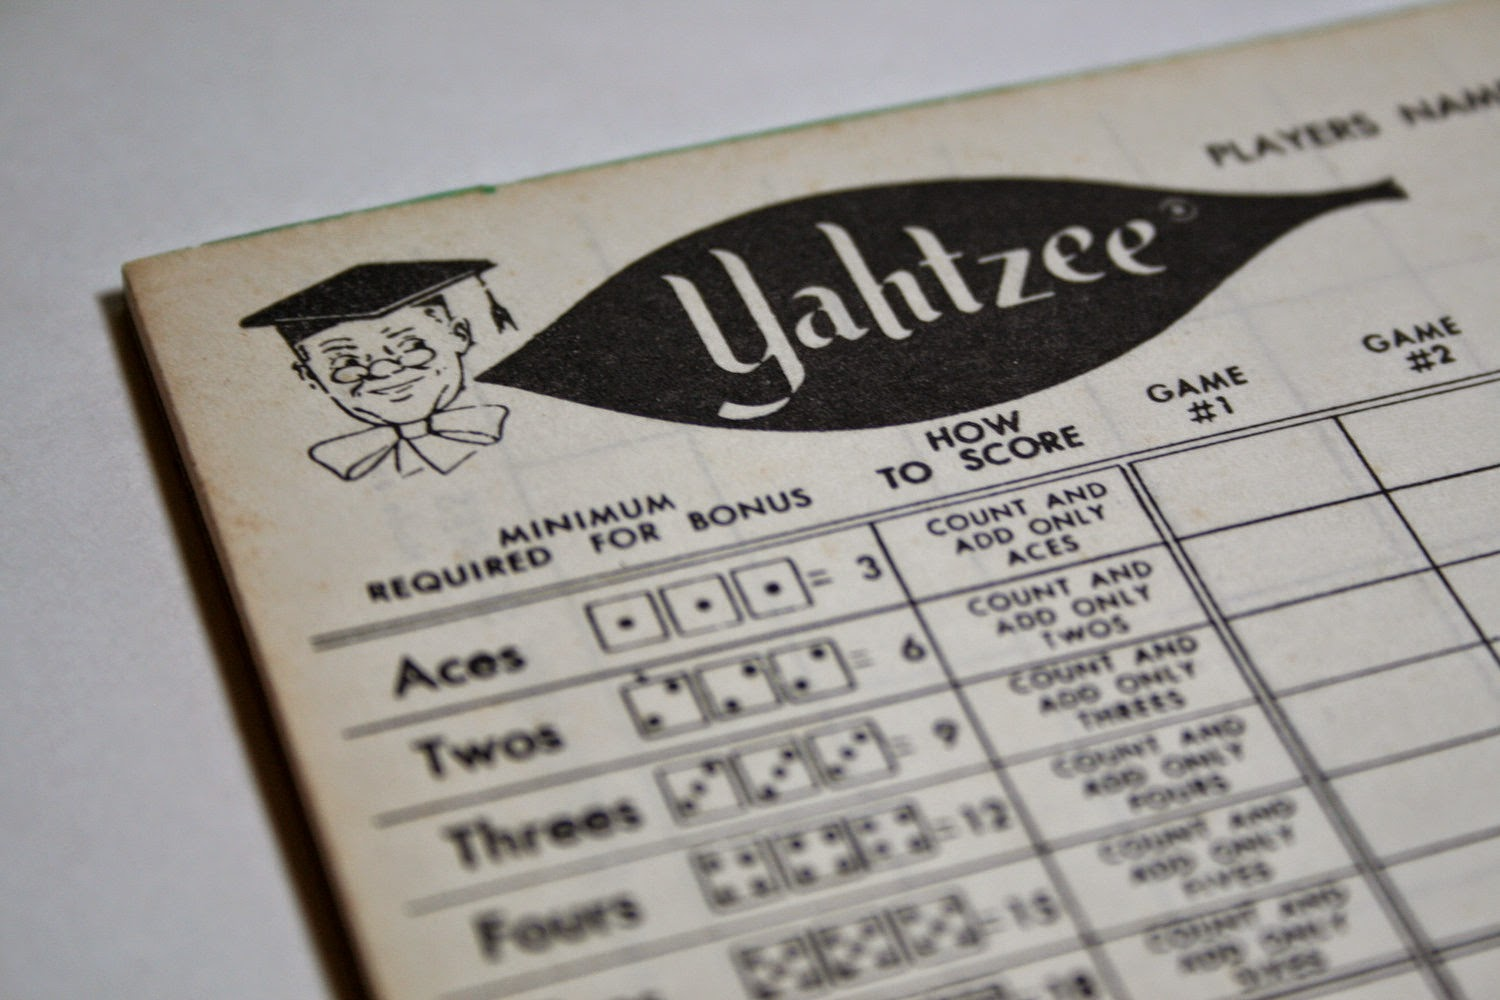 image regarding Yahtzee Rules Printable identify Yahtzee On the web: Printable Yahtzee Ranking Sheet